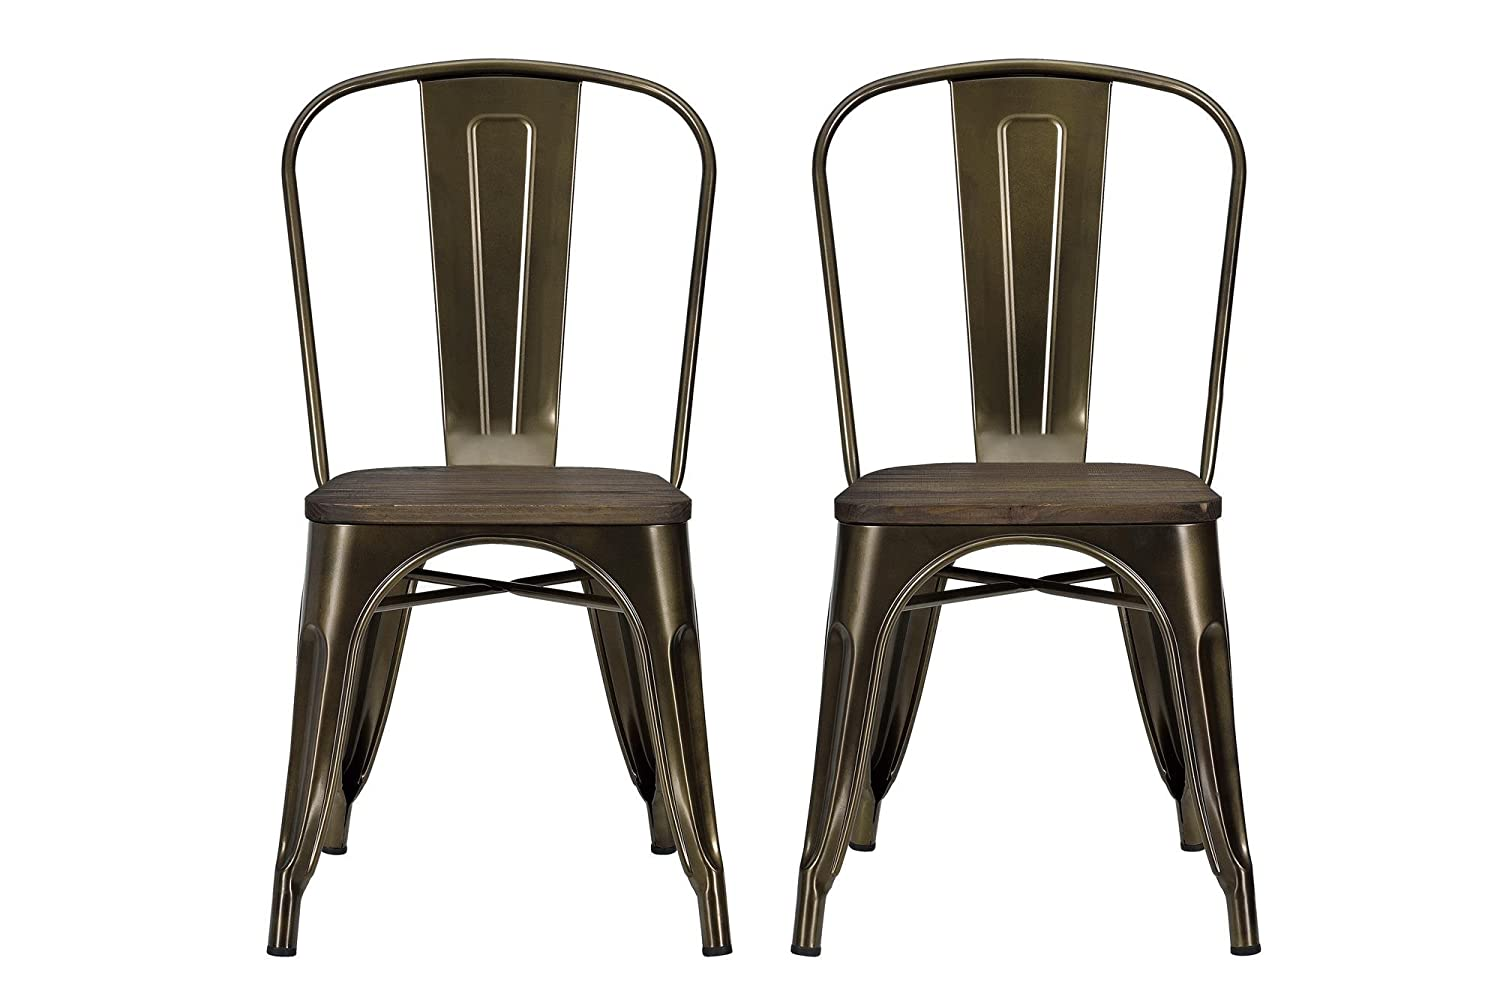 Amazon.com: DHP Fusion Metal Dining Chair with Wood Seat (Set of 2 ...